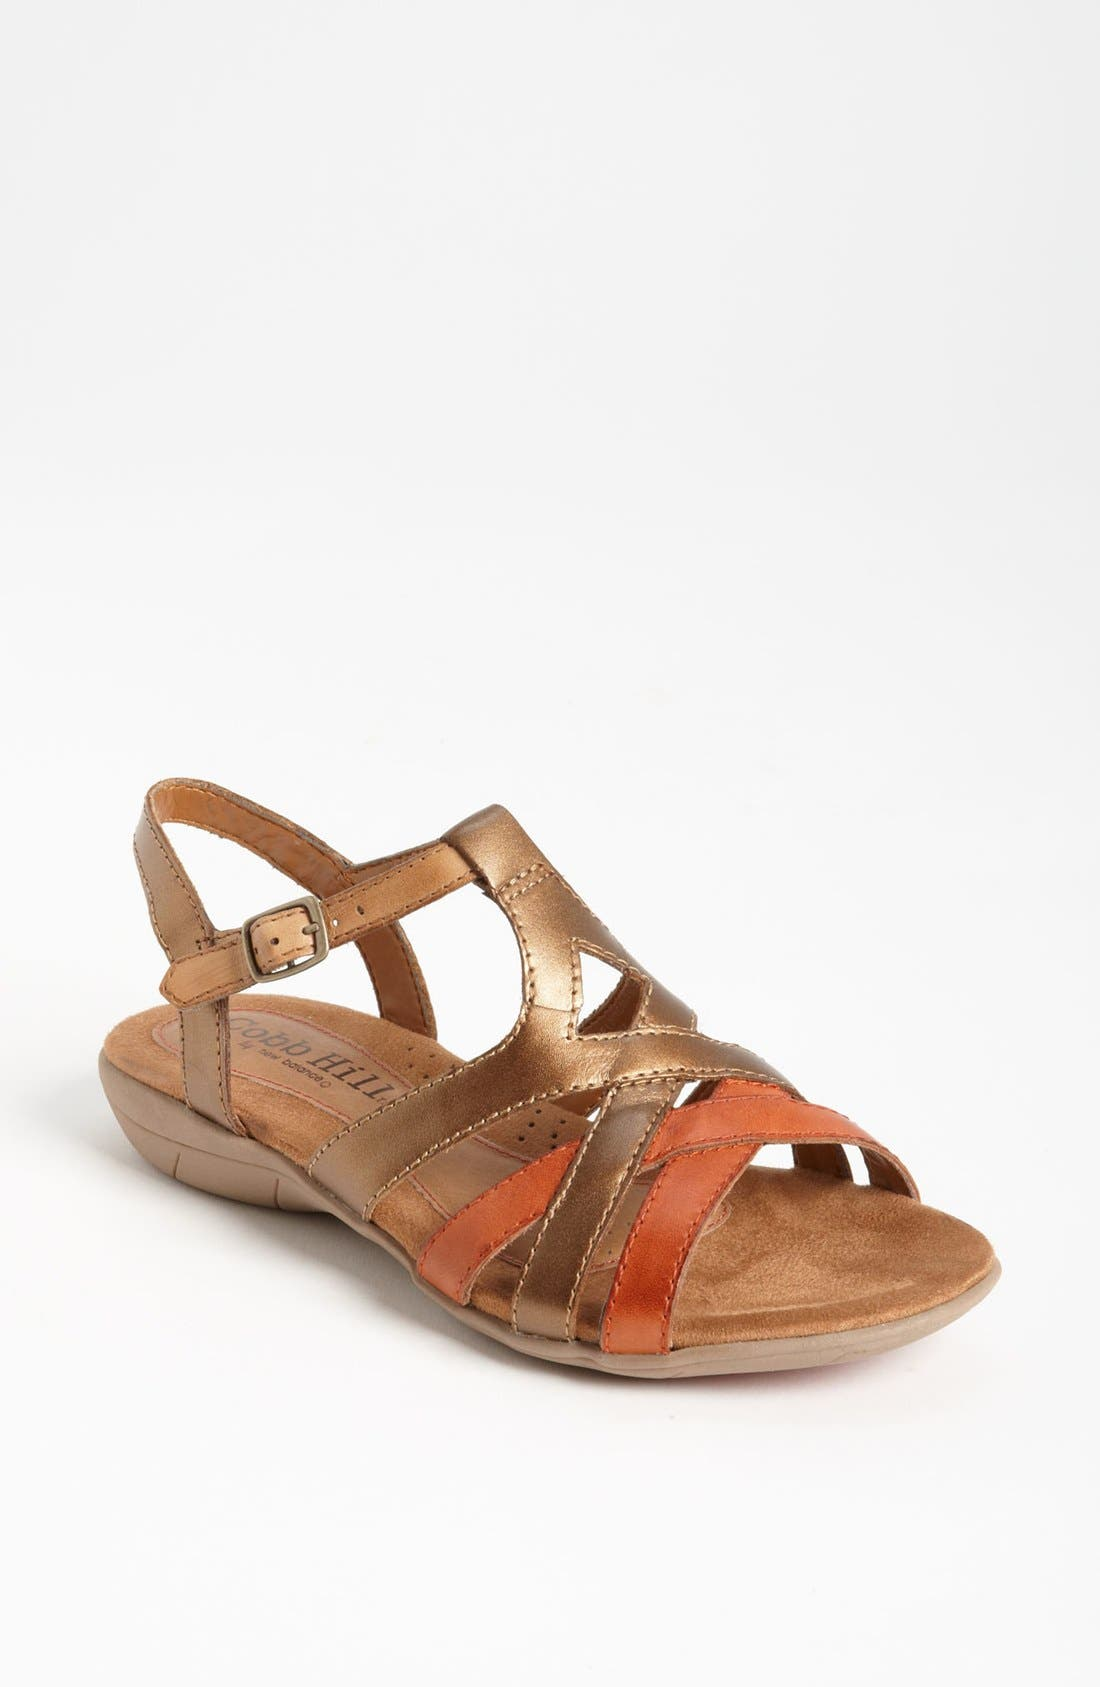 Main Image - Cobb Hill 'Willette' Sandal